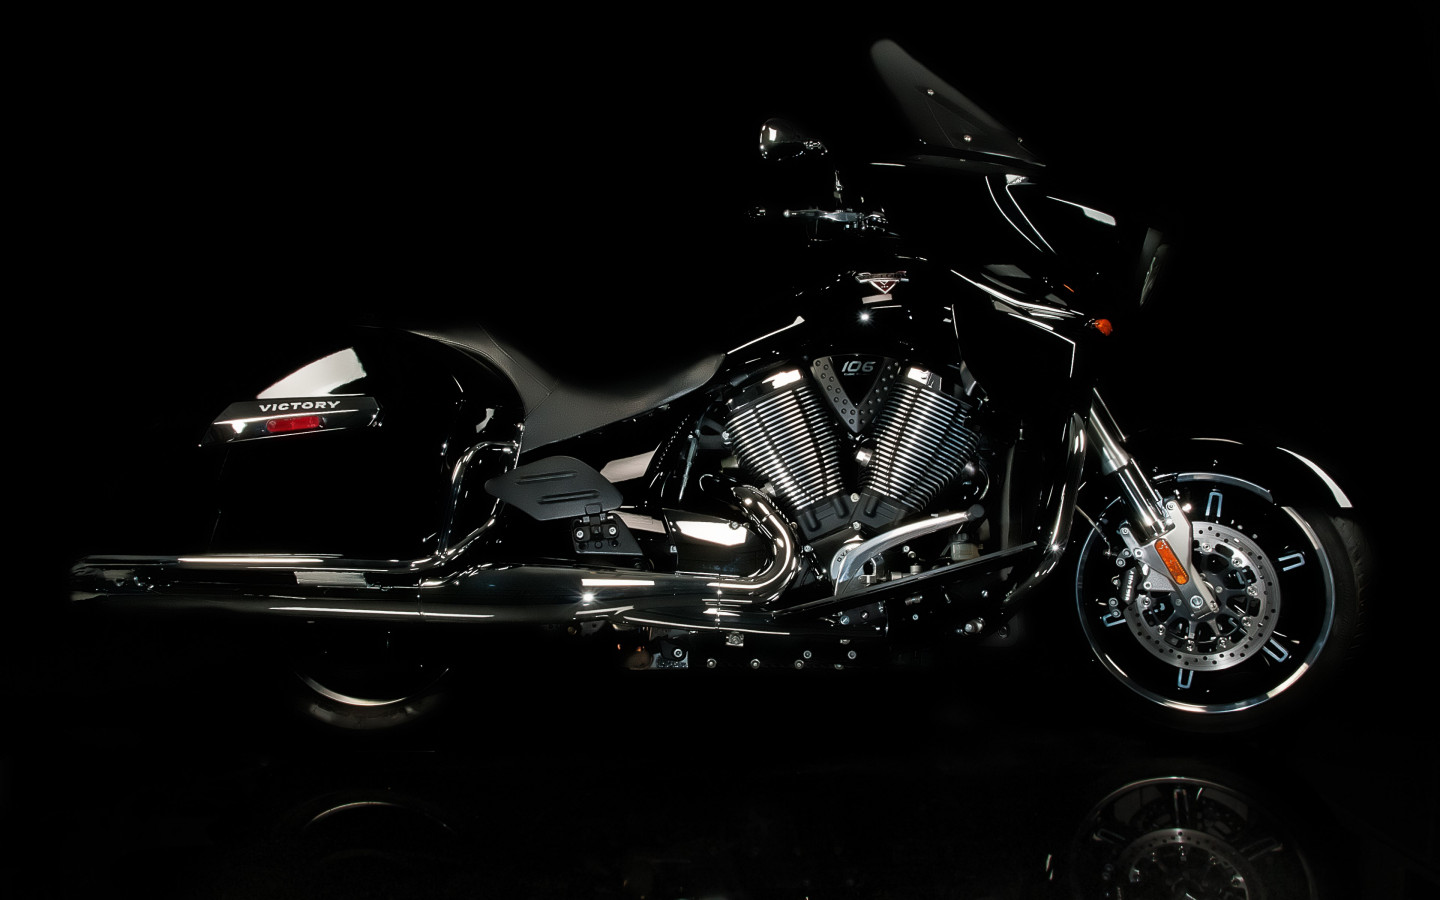 Victory motorcycle wallpaper 1440x900